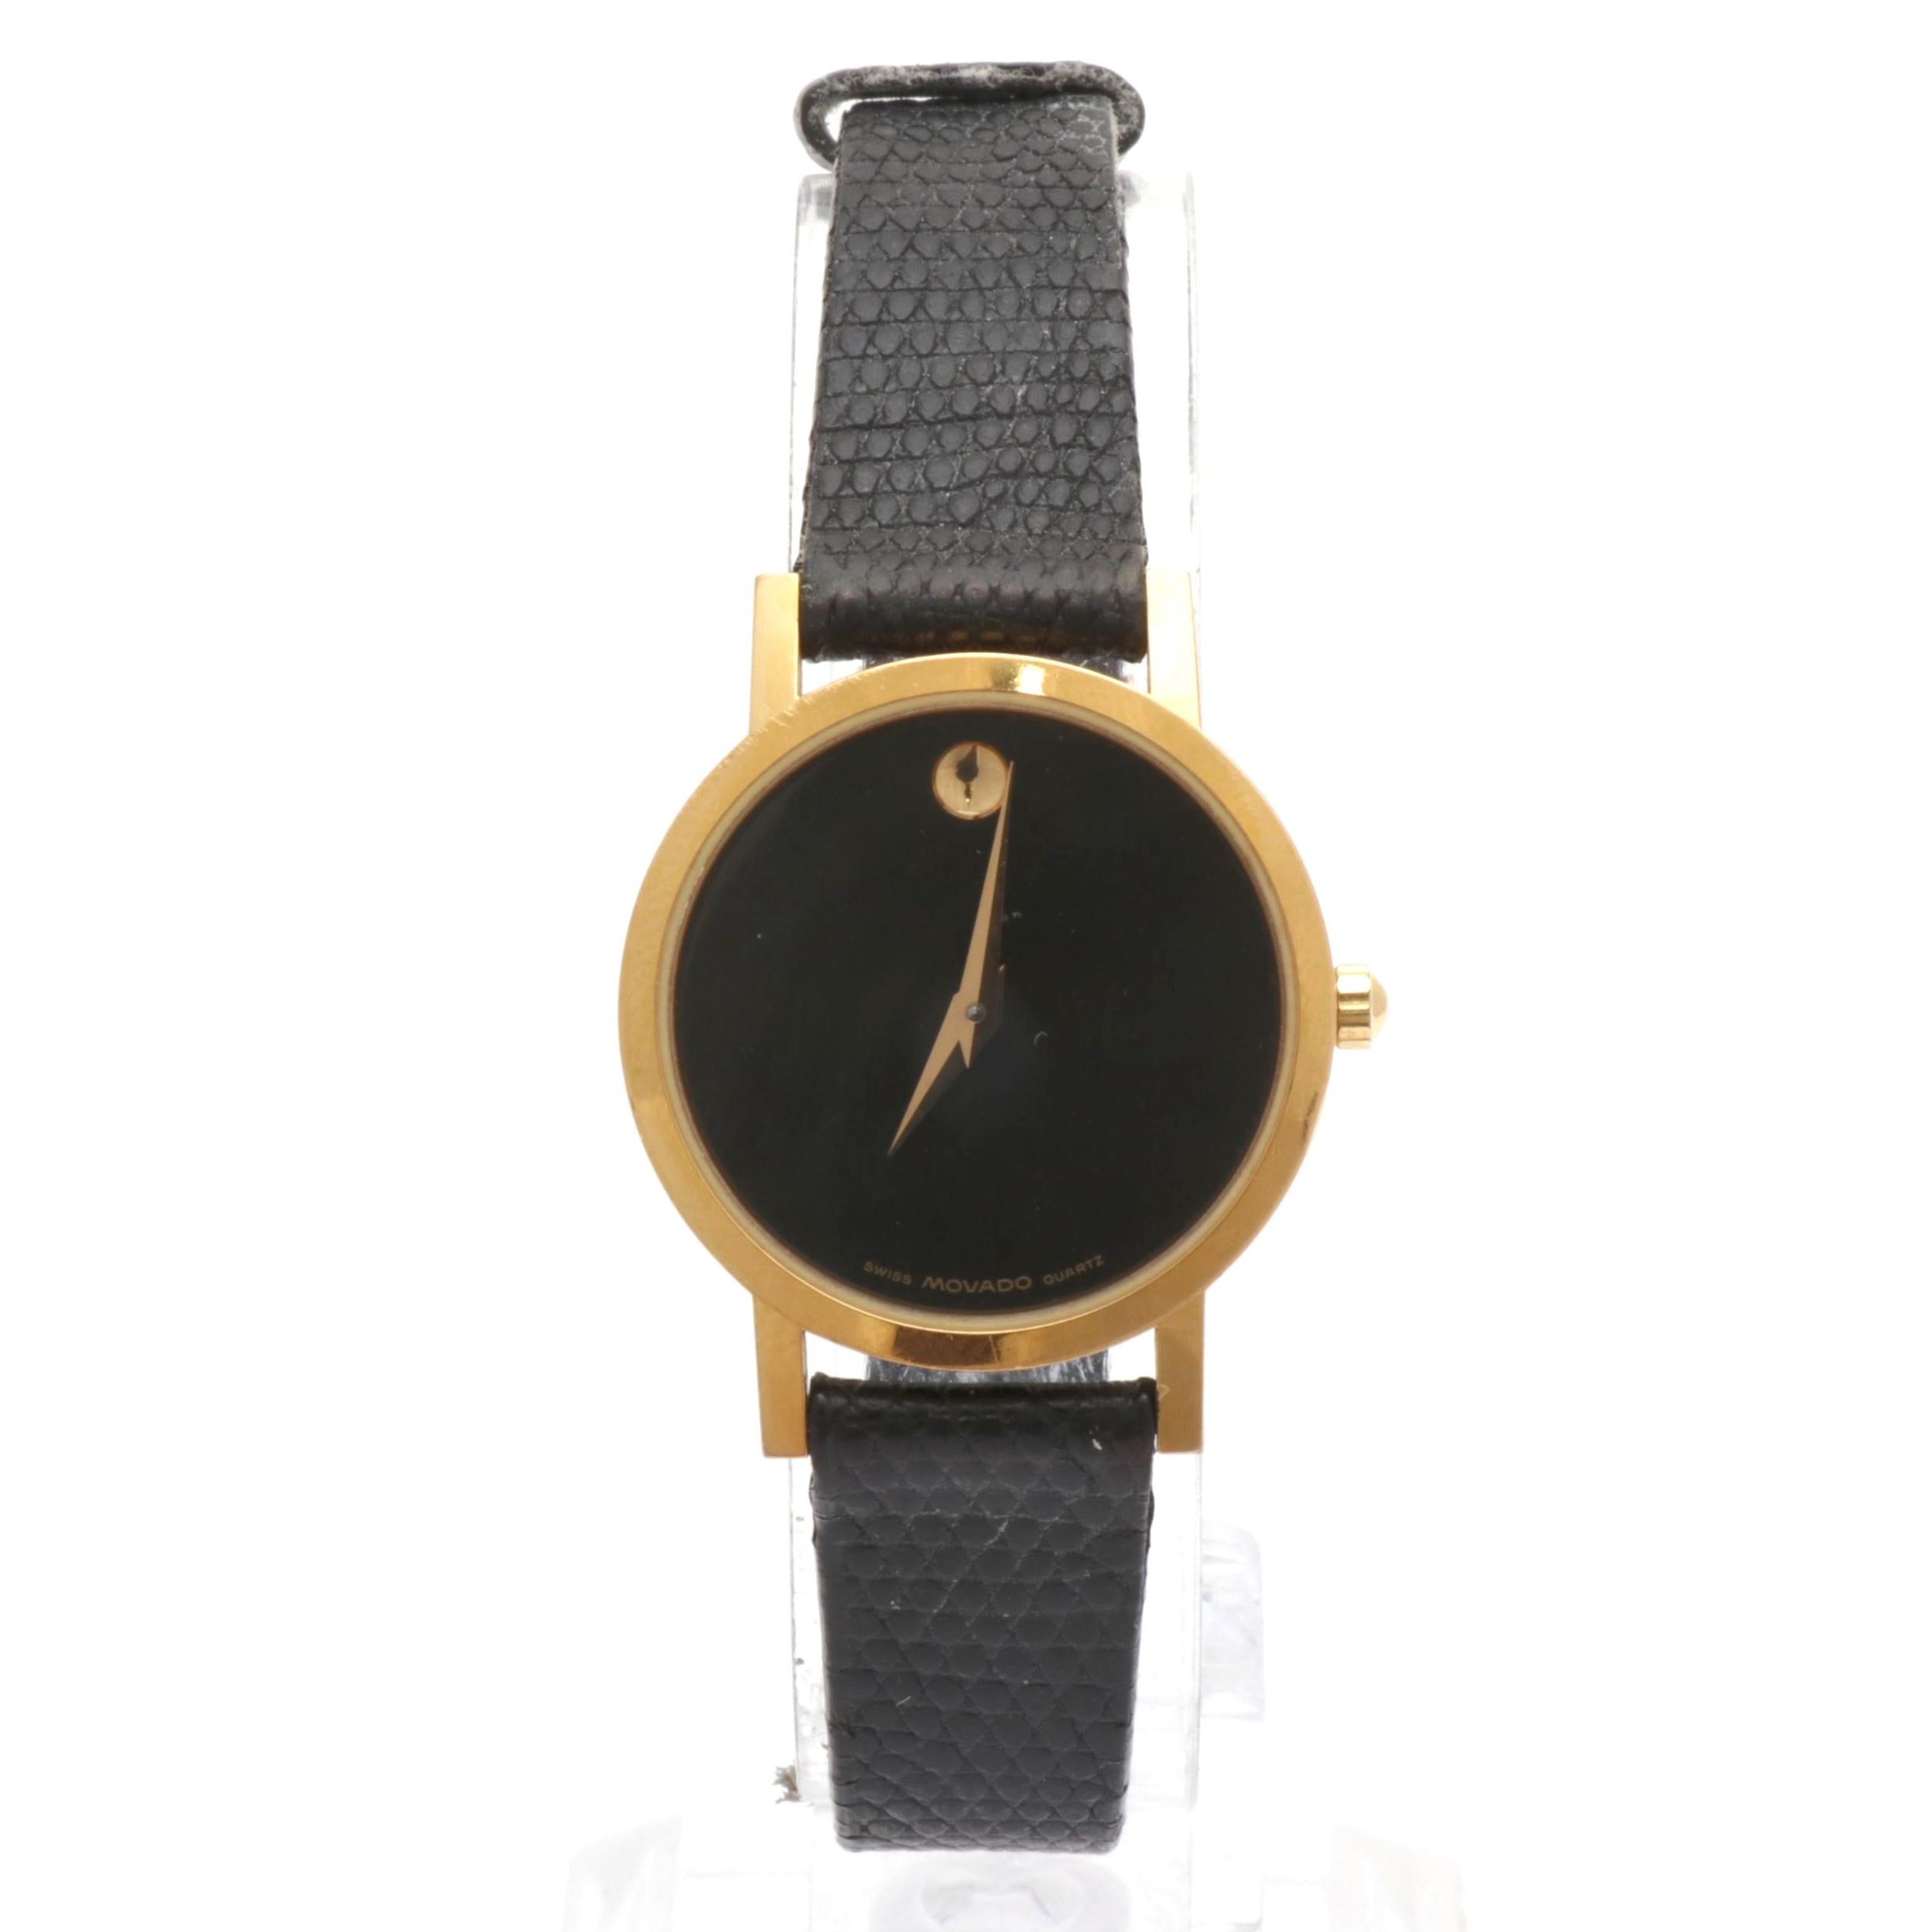 "Movado ""Museum Piece"" Gold Tone Wristwatch with Lizard Band"